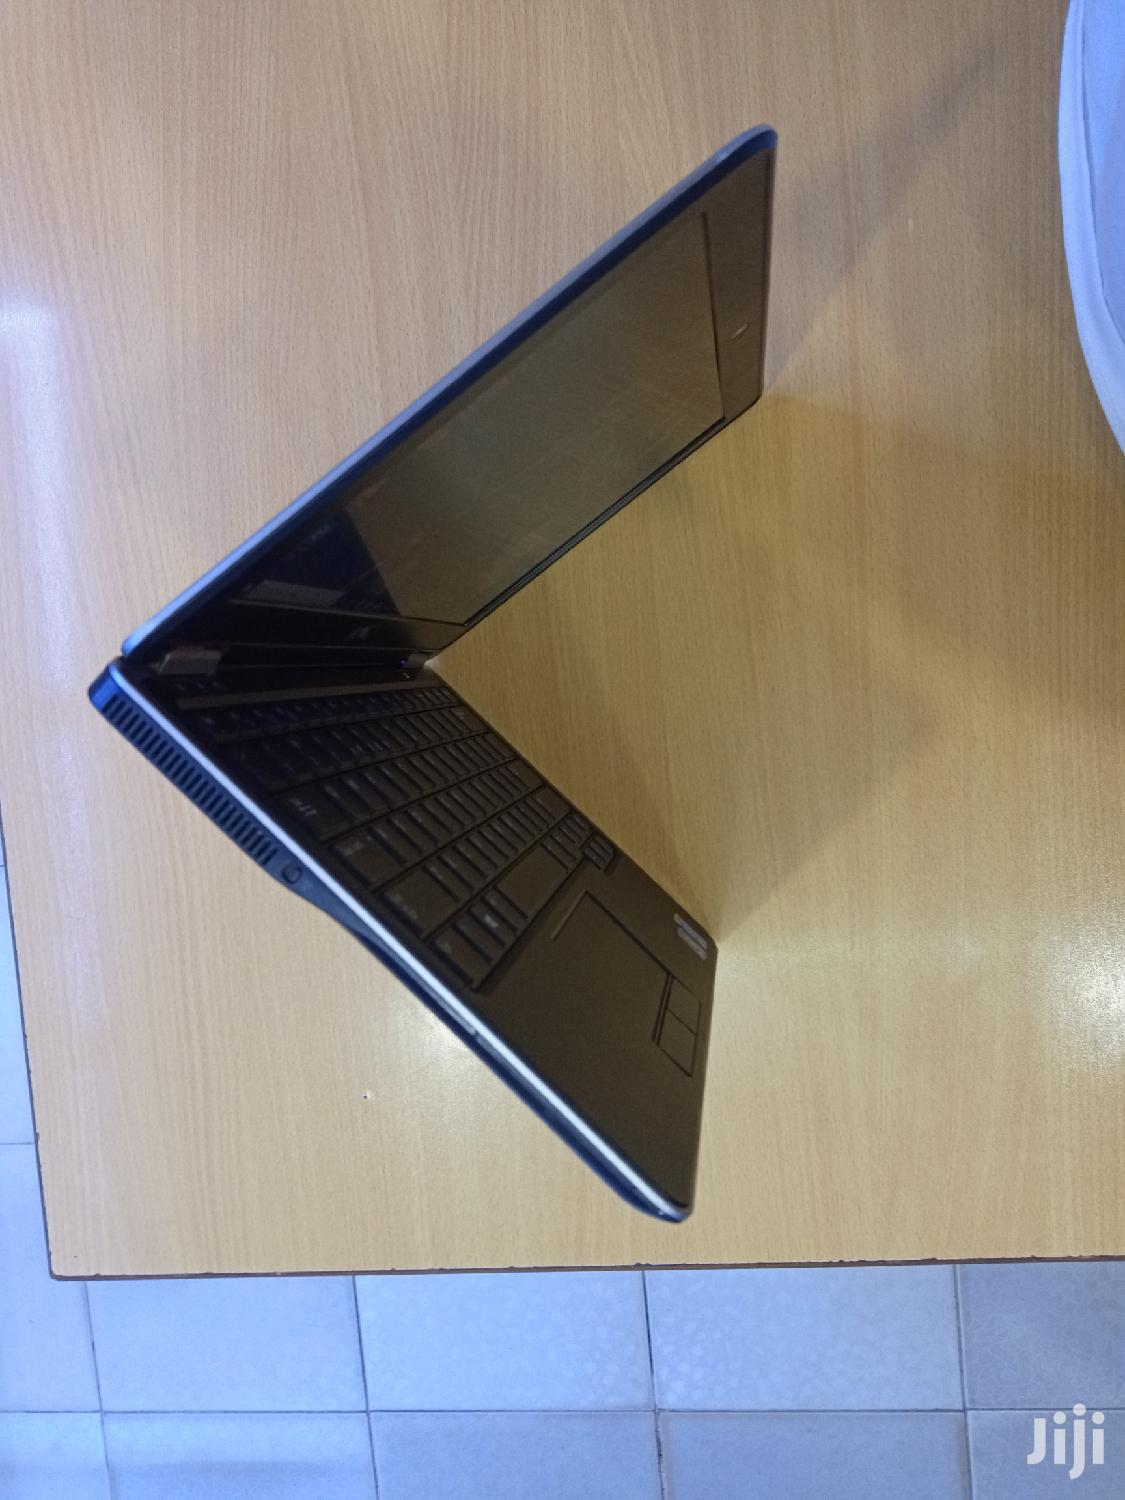 Archive: Dell Latitude E7250 13 Ubcges 256Gb Ssd Core I5 8Gb Ram